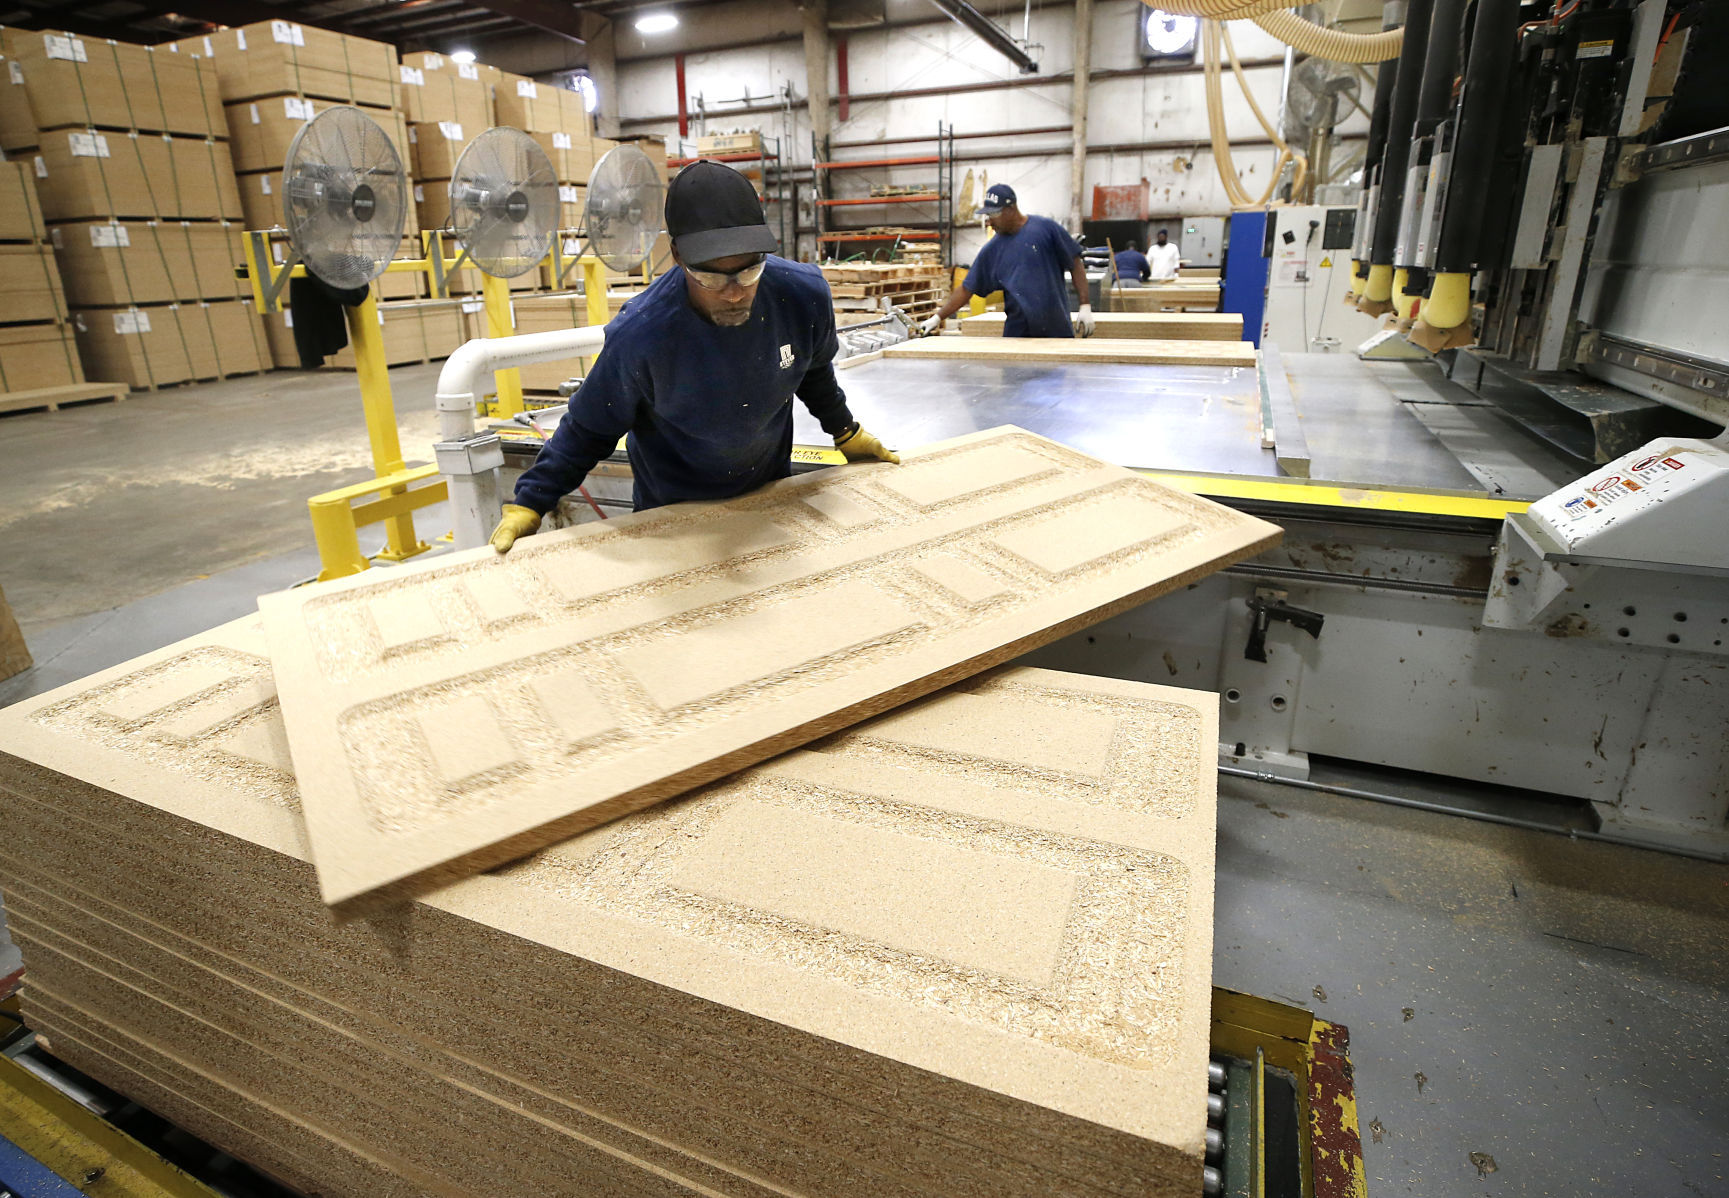 Door Manufacturer Steves U0026 Sons Investing In Eastern Henrico County Plant  And Hiring Workers